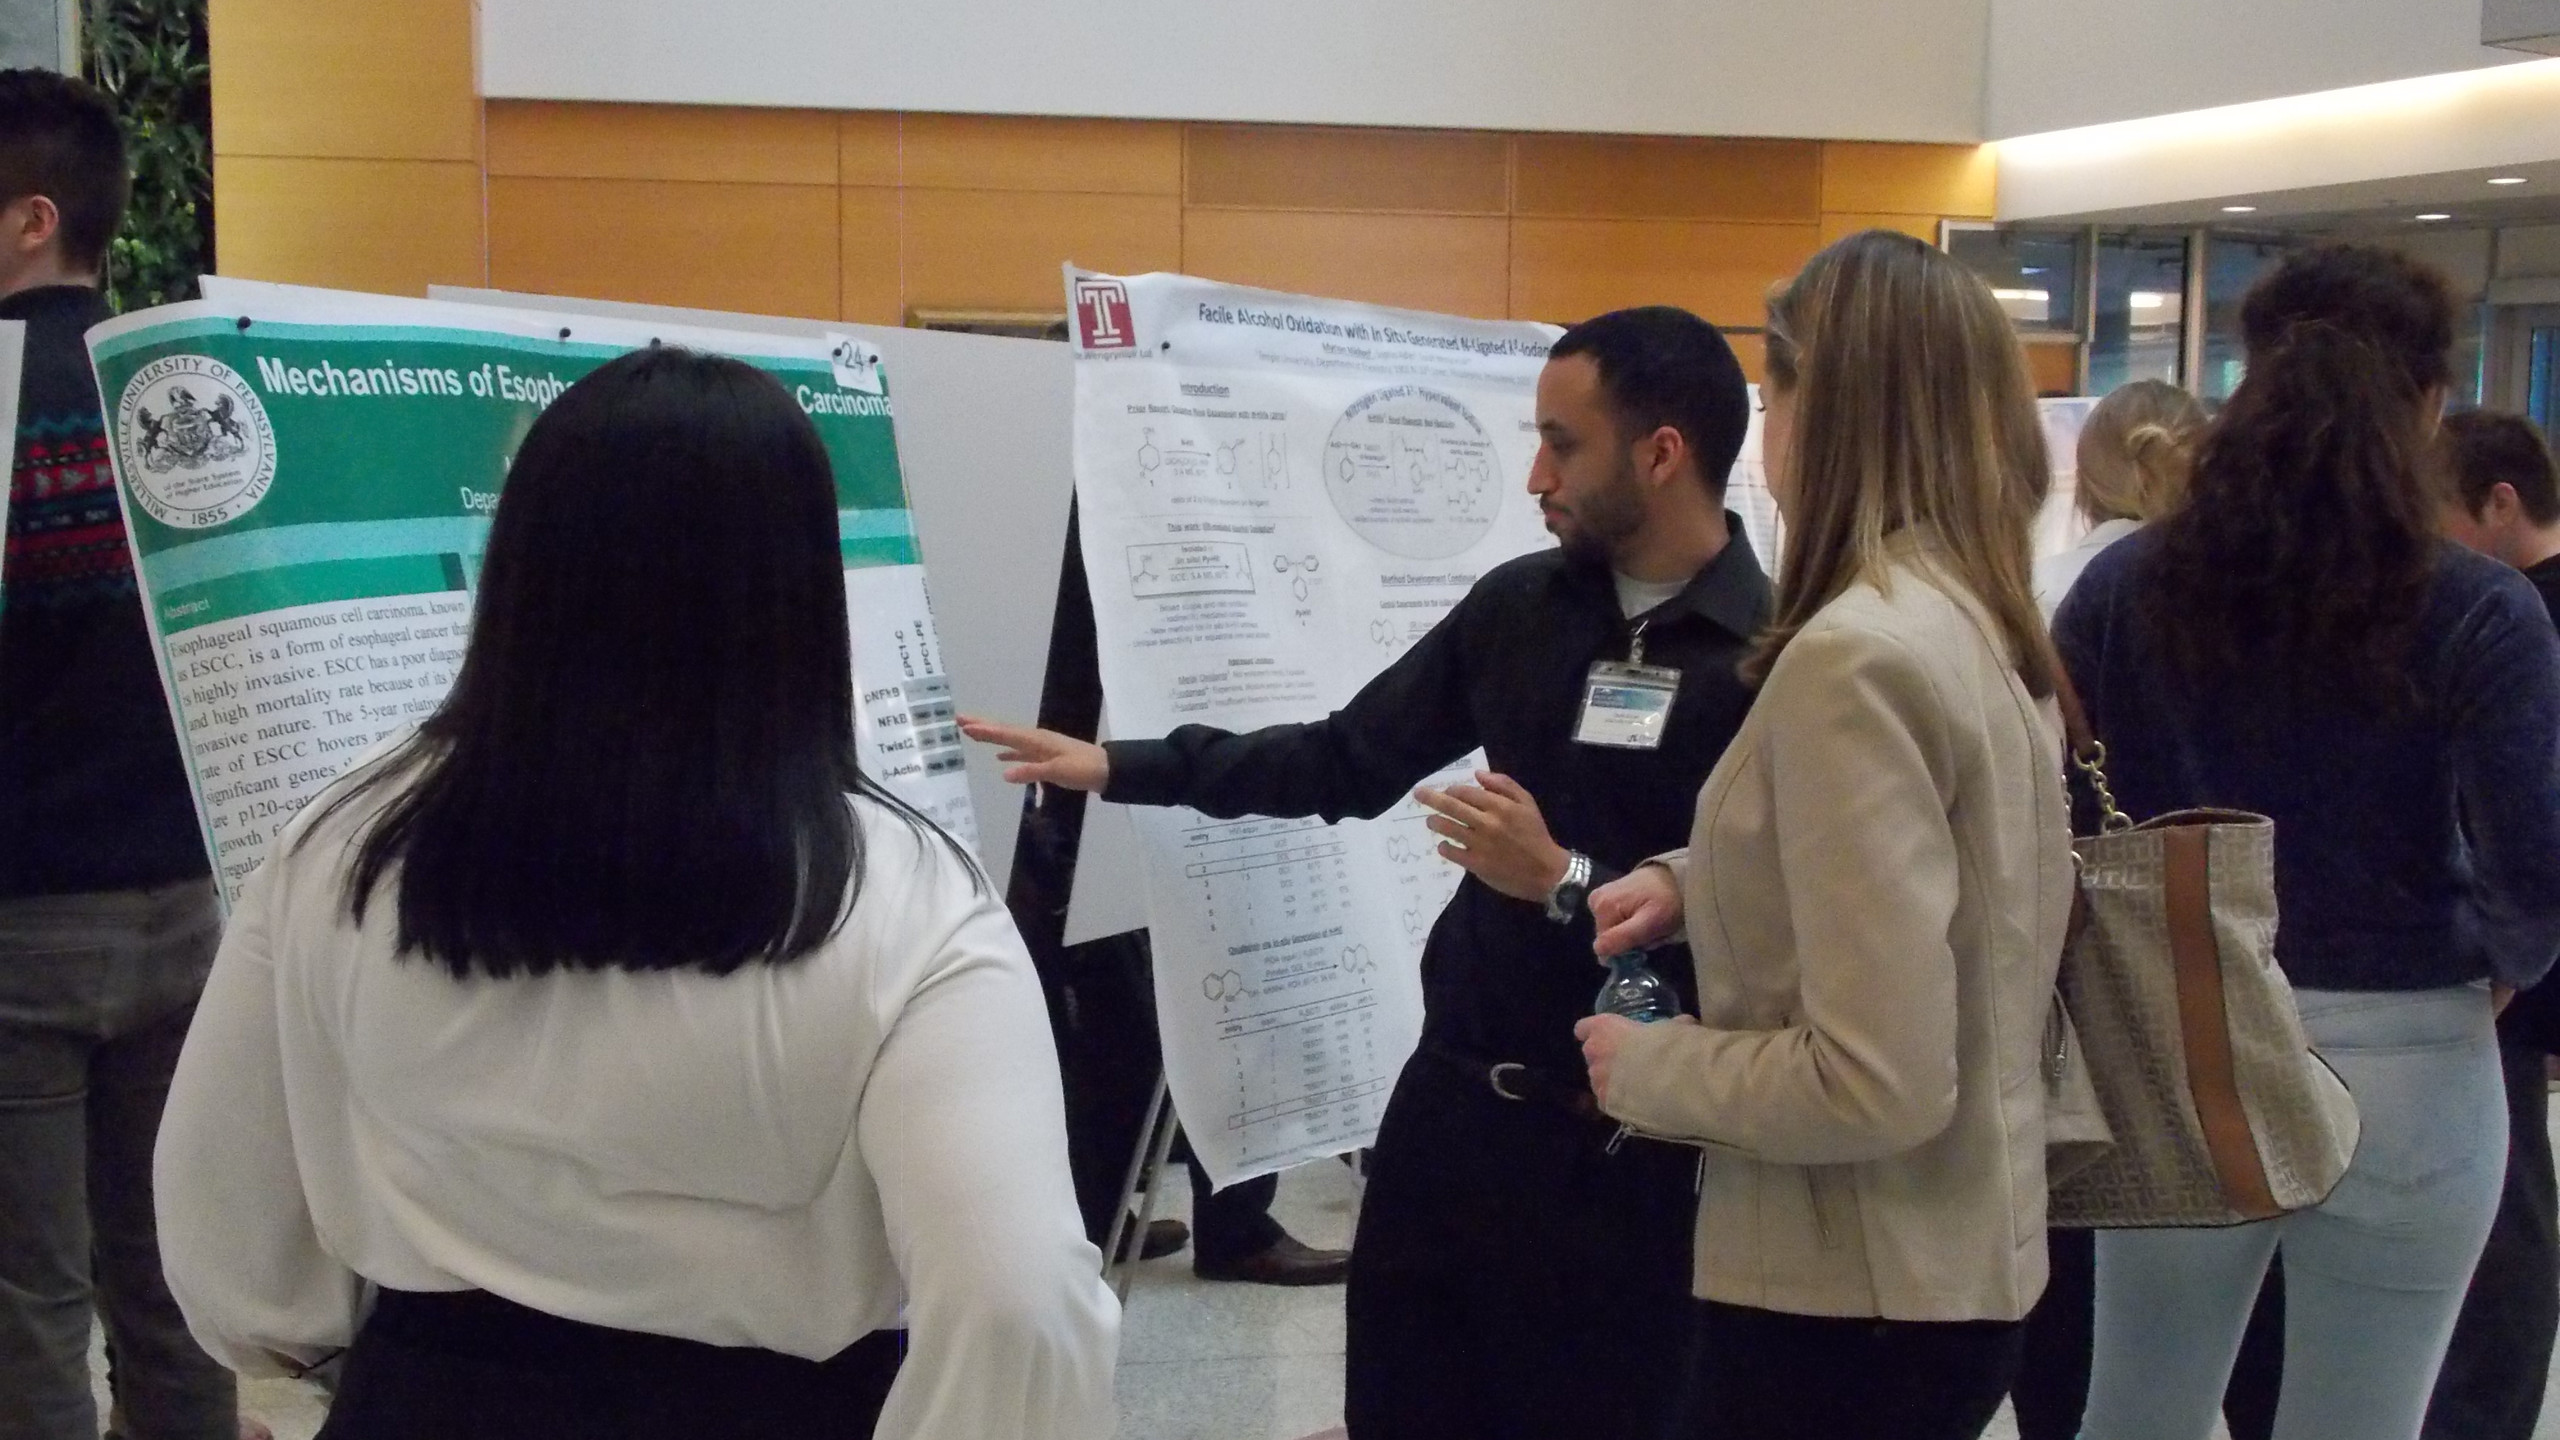 Drexel YRC Poster Session